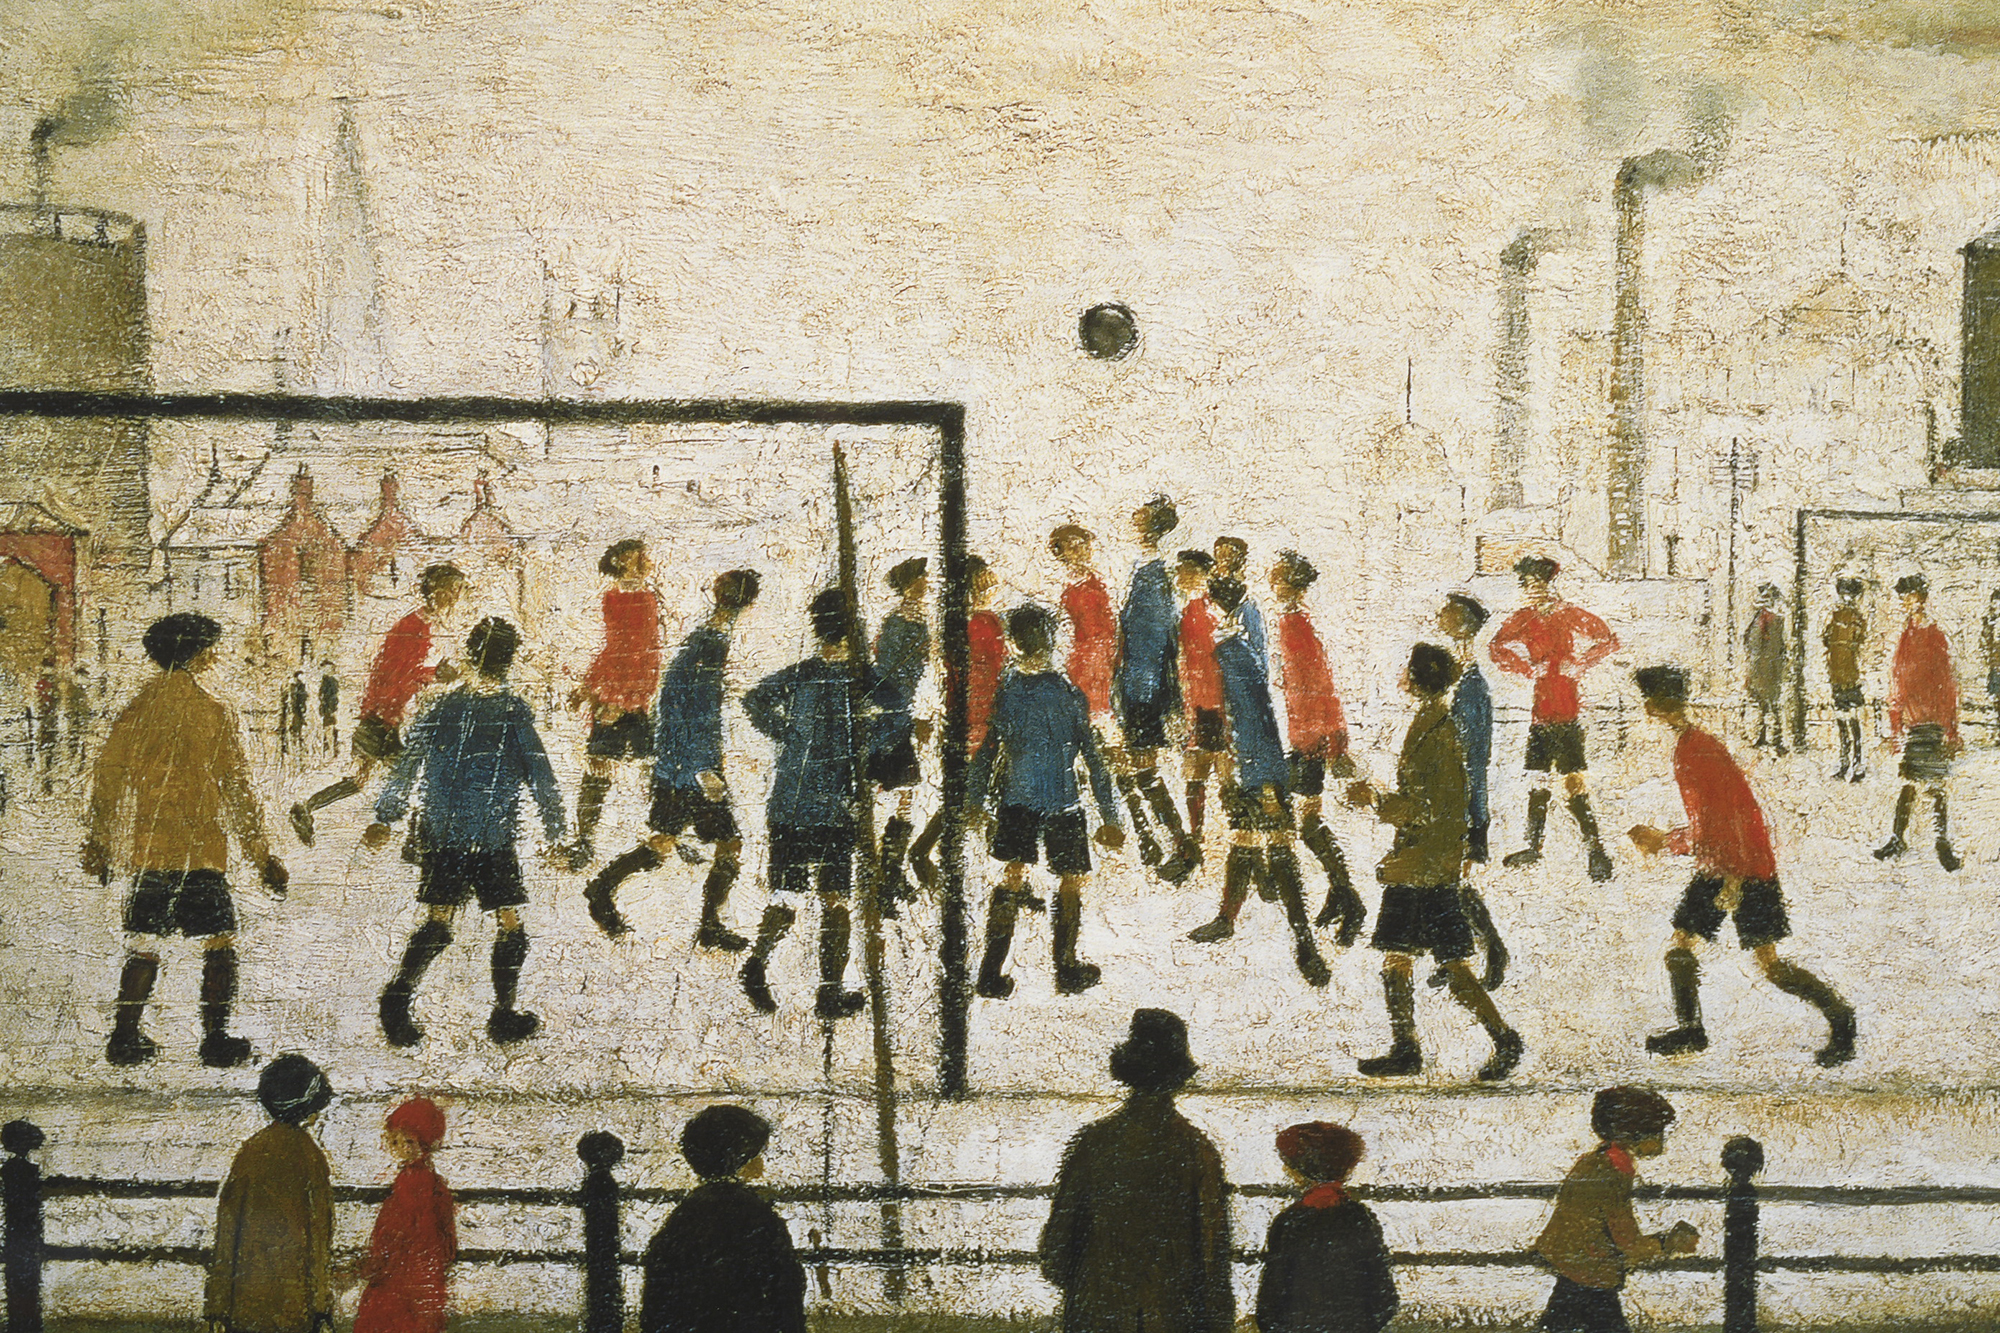 """Limited Edition by L.S. Lowry """"The Football Match"""" - Image 6 of 8"""